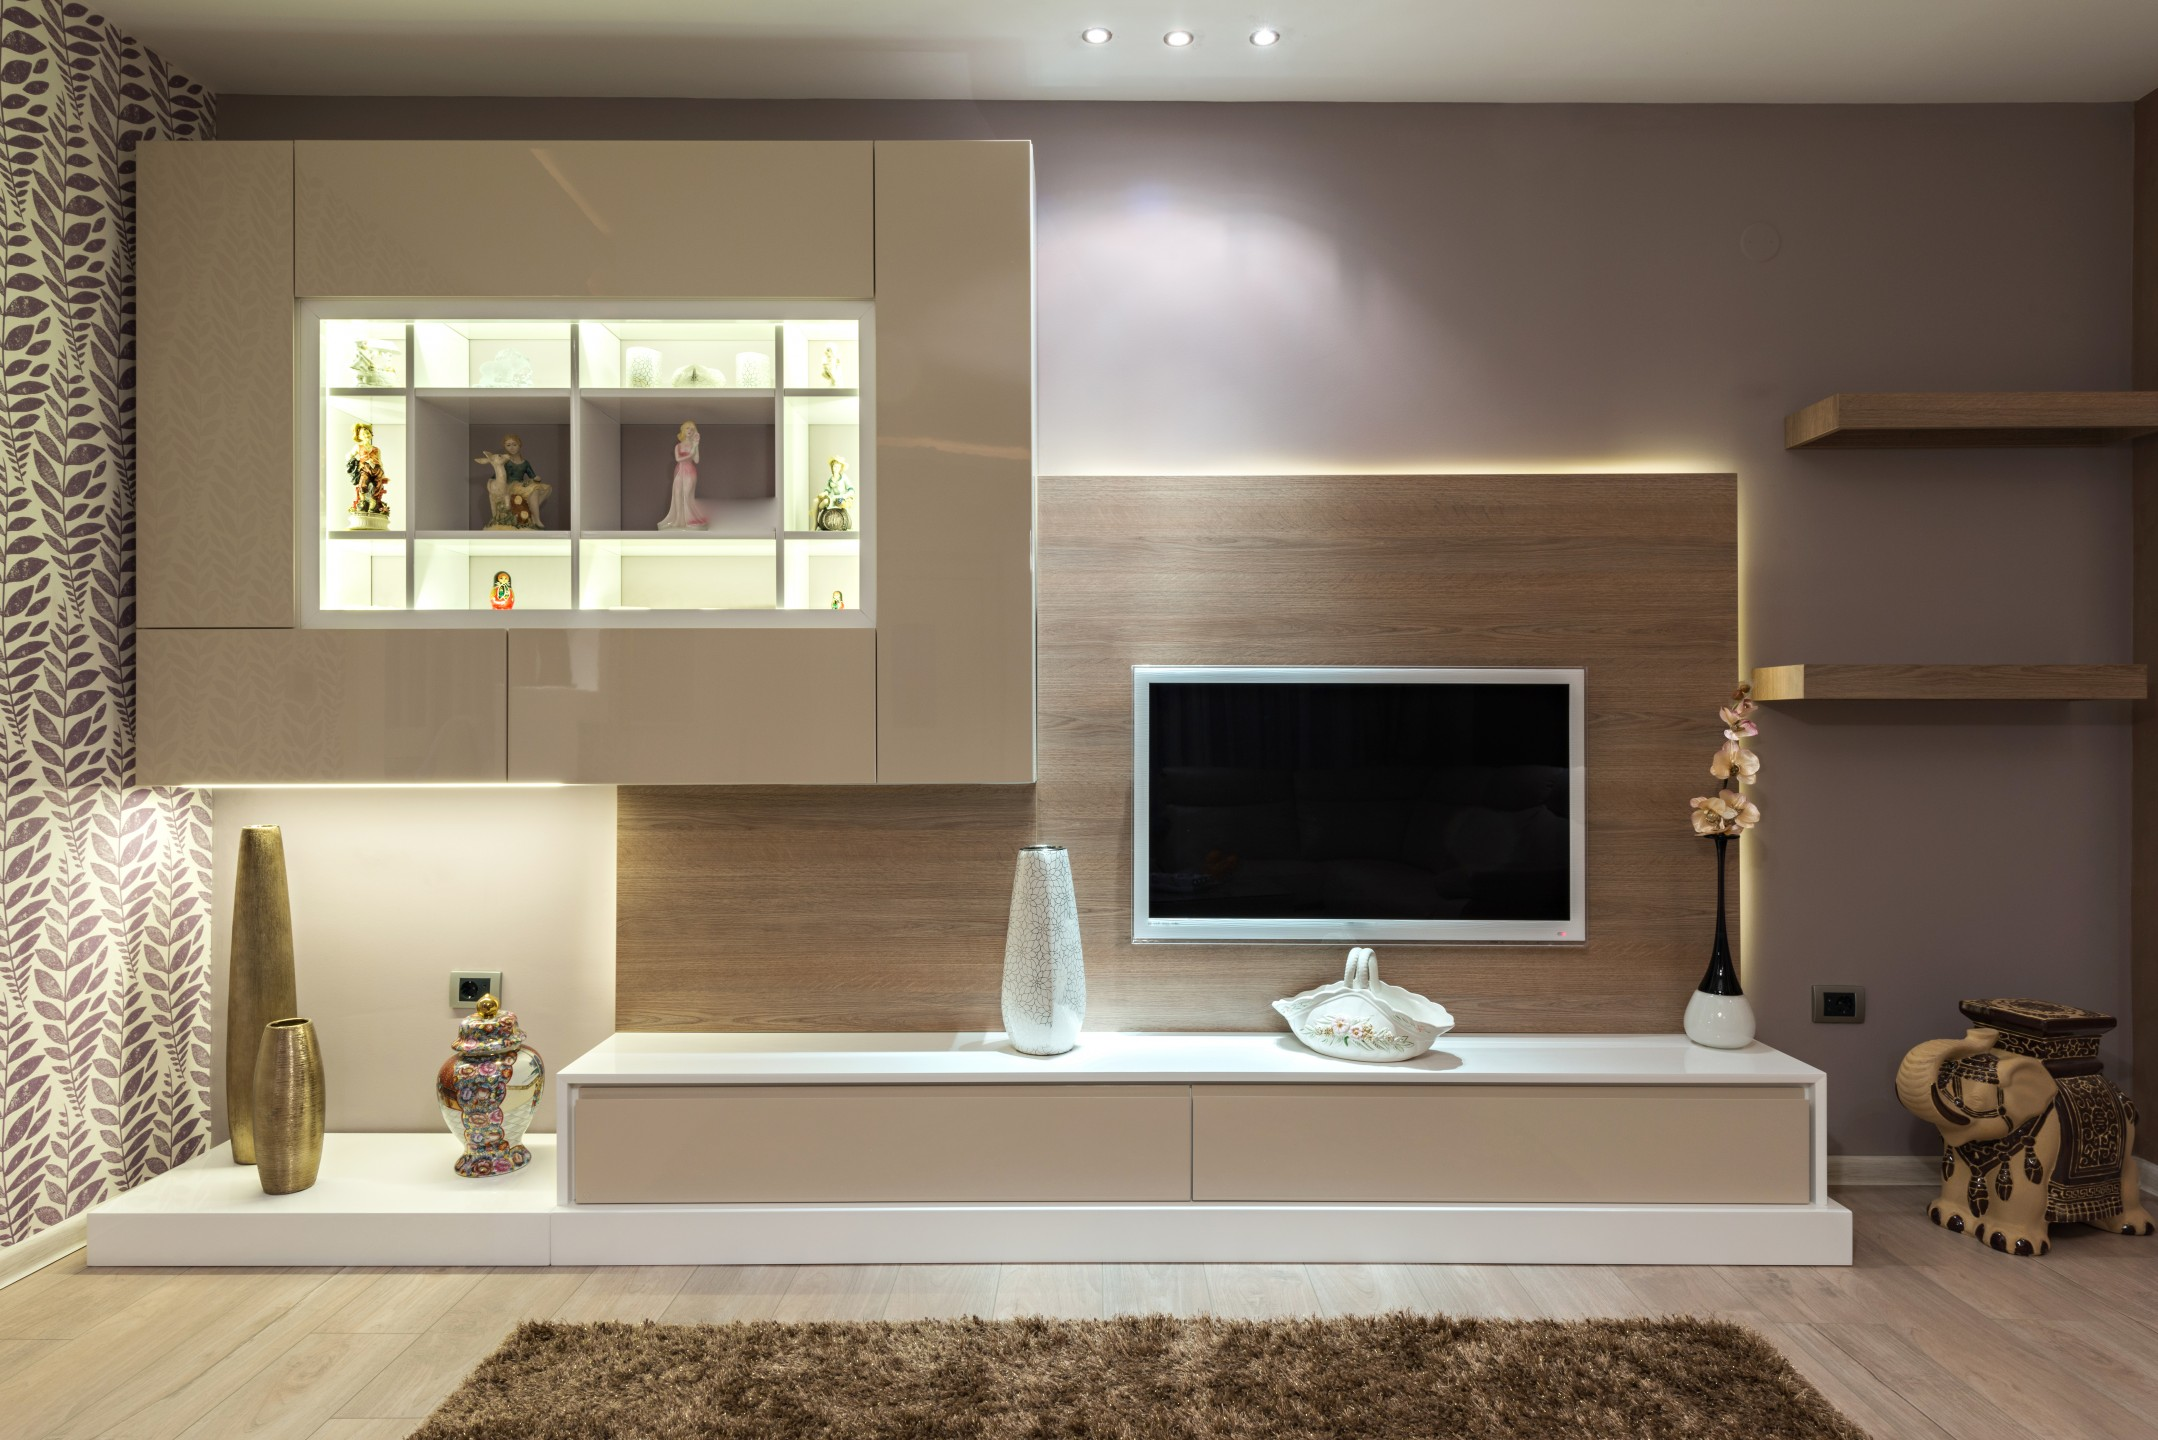 Download New LCD Cabinet Design Idea Image ...